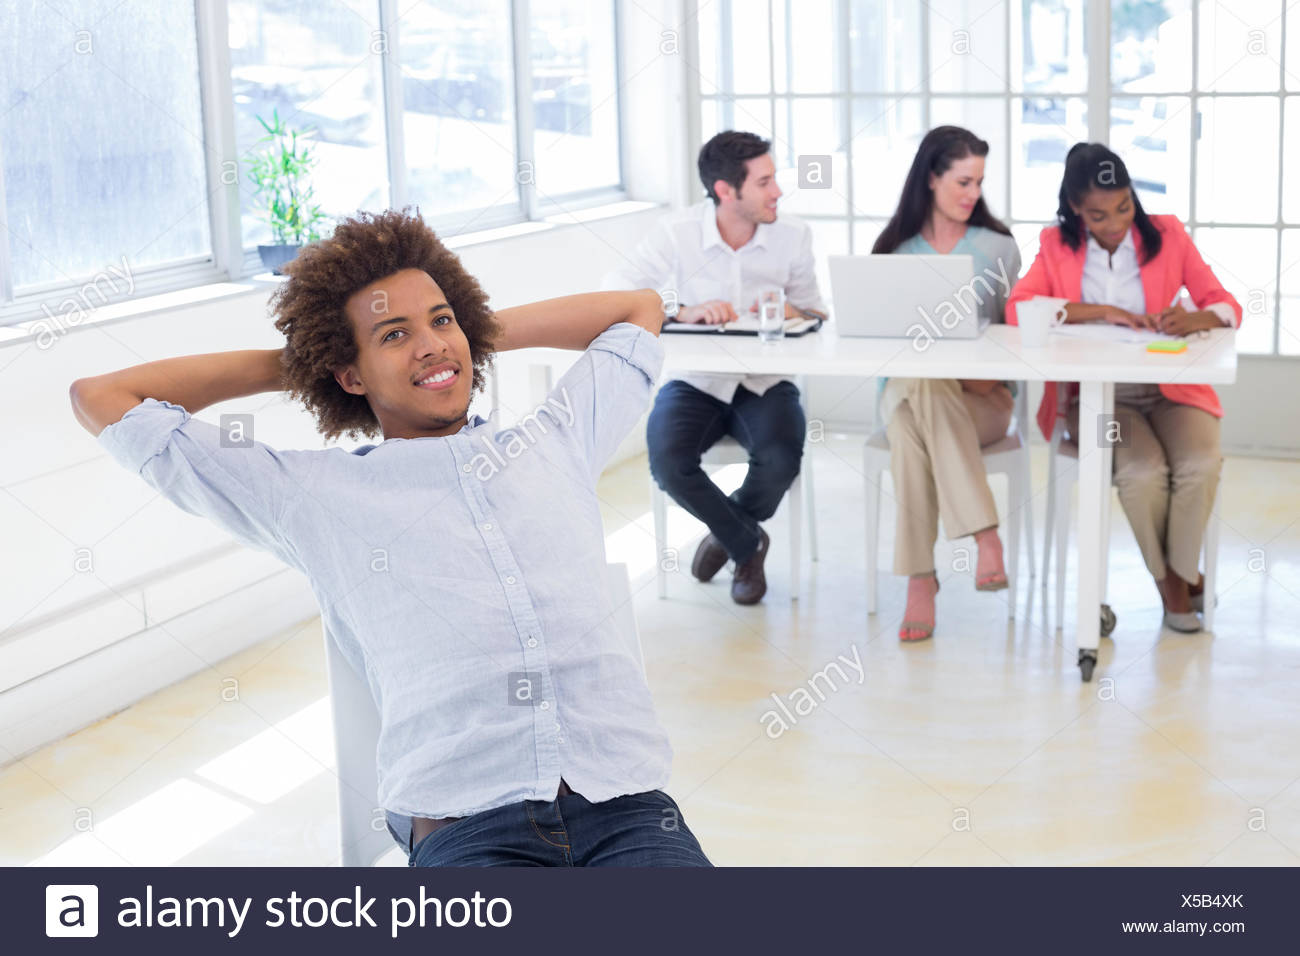 Businessman relaxing with coworkers behind him - Stock Image